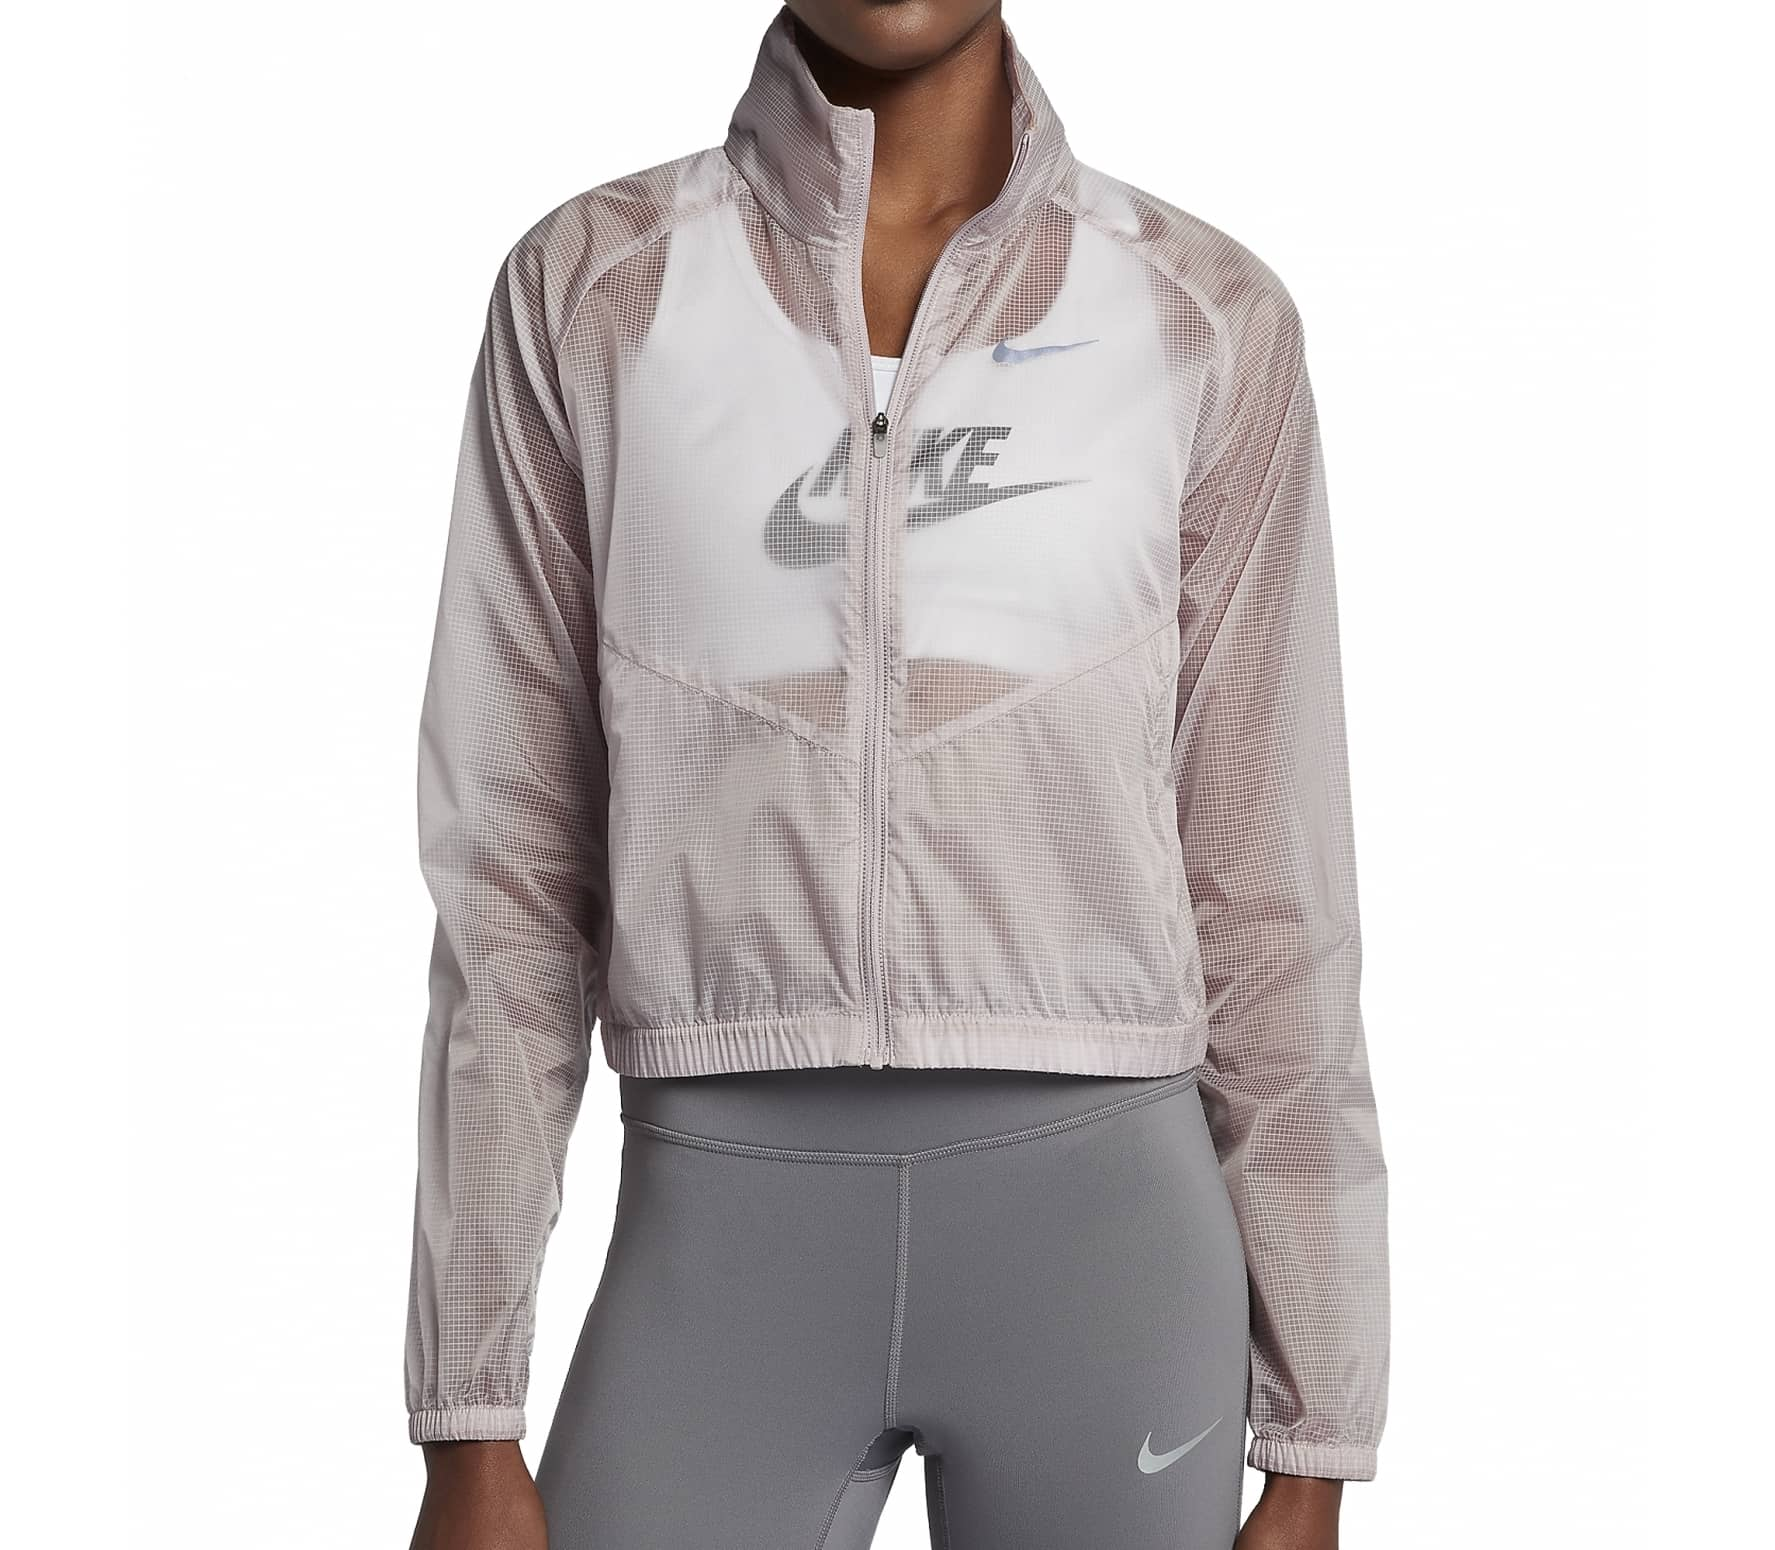 Nike - Running women's jacket (brown/grey) - XS thumbnail